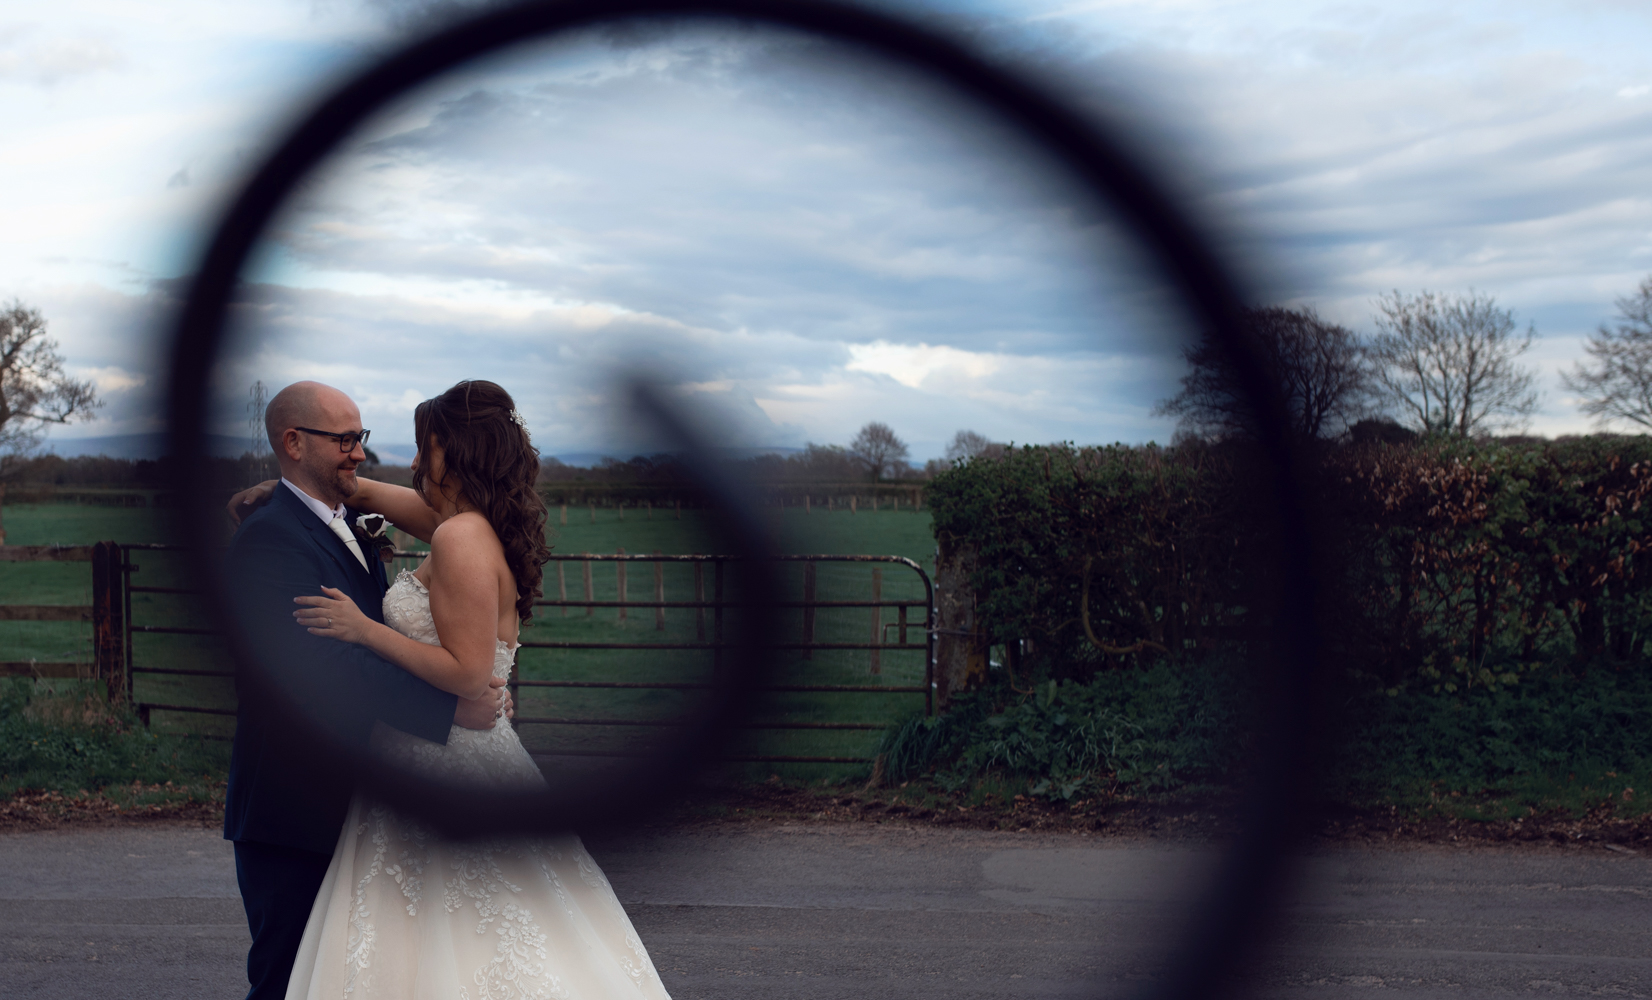 Photo of the bride and groom taken through a wrought iron gate swirl